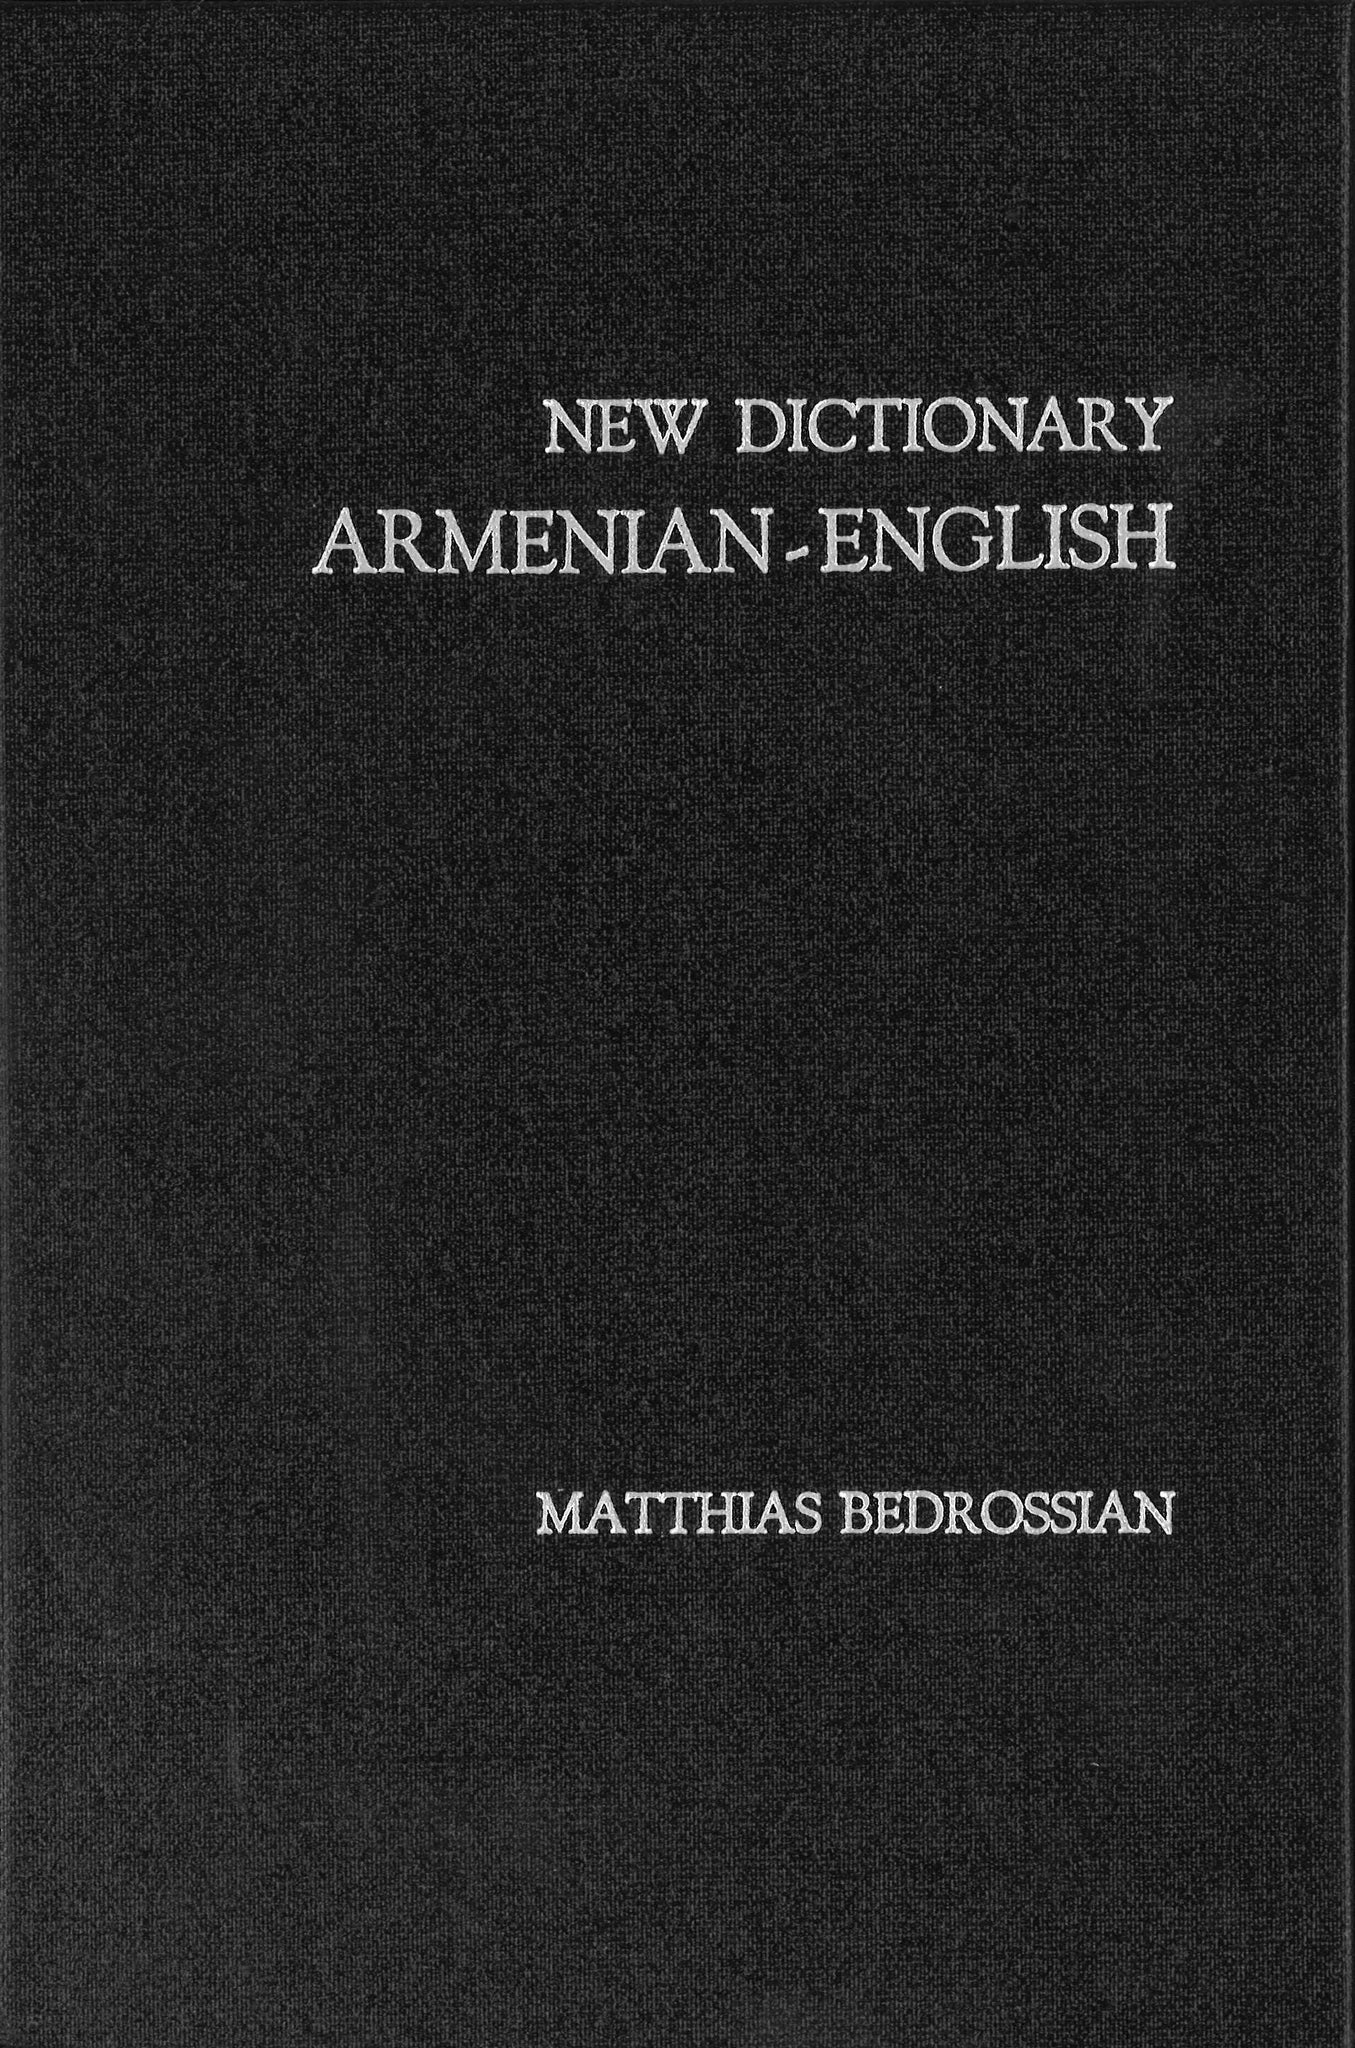 NEW DICTIONARY: ARMENIAN-ENGLISH ENGLISH-ARMENIAN